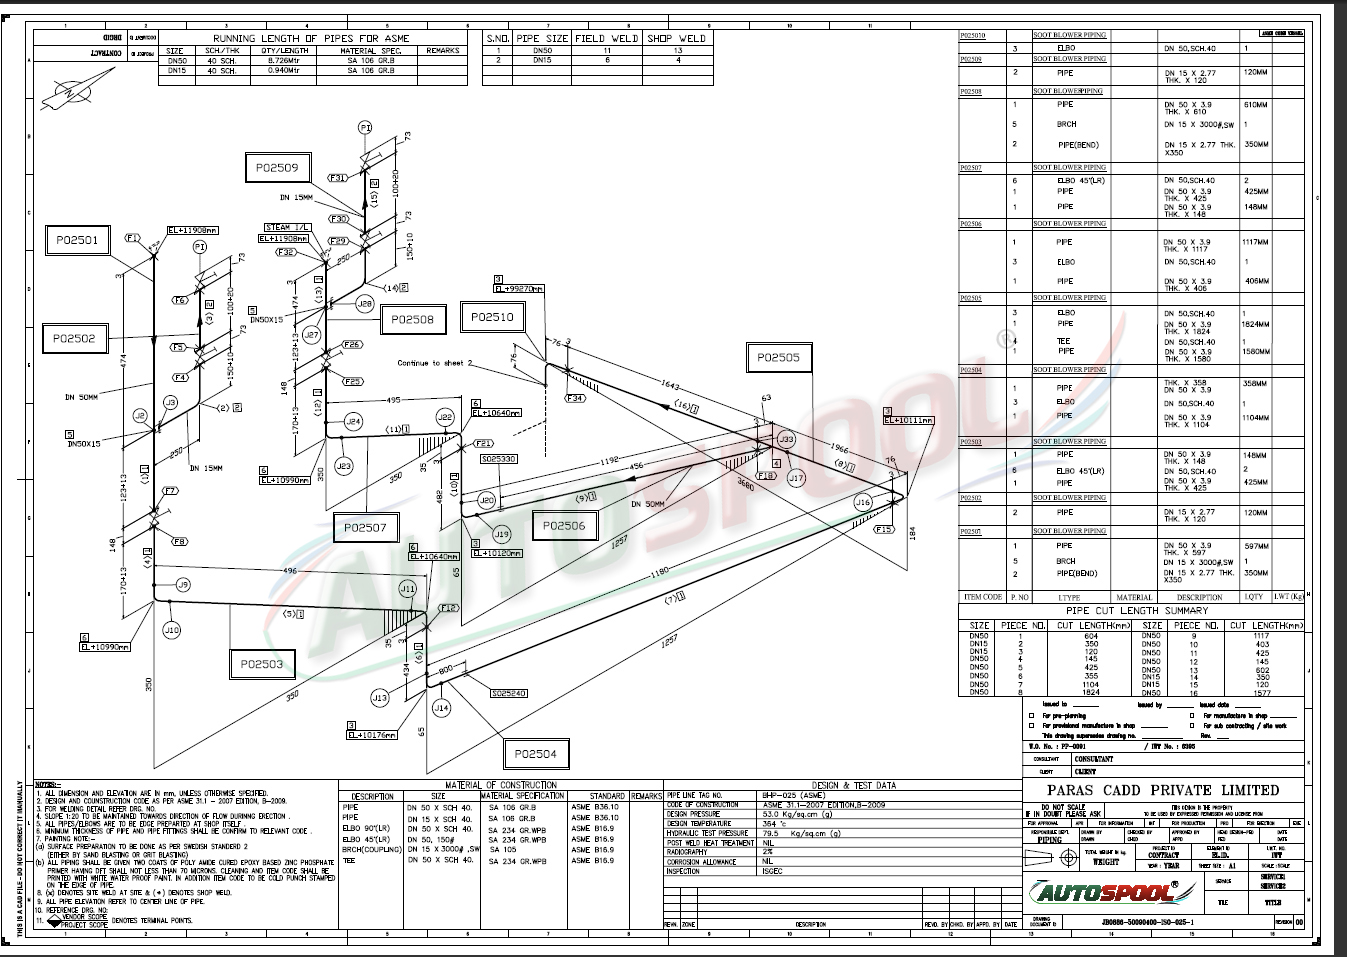 Pipe Spool Fabrication Drawing Fabrication Drawings